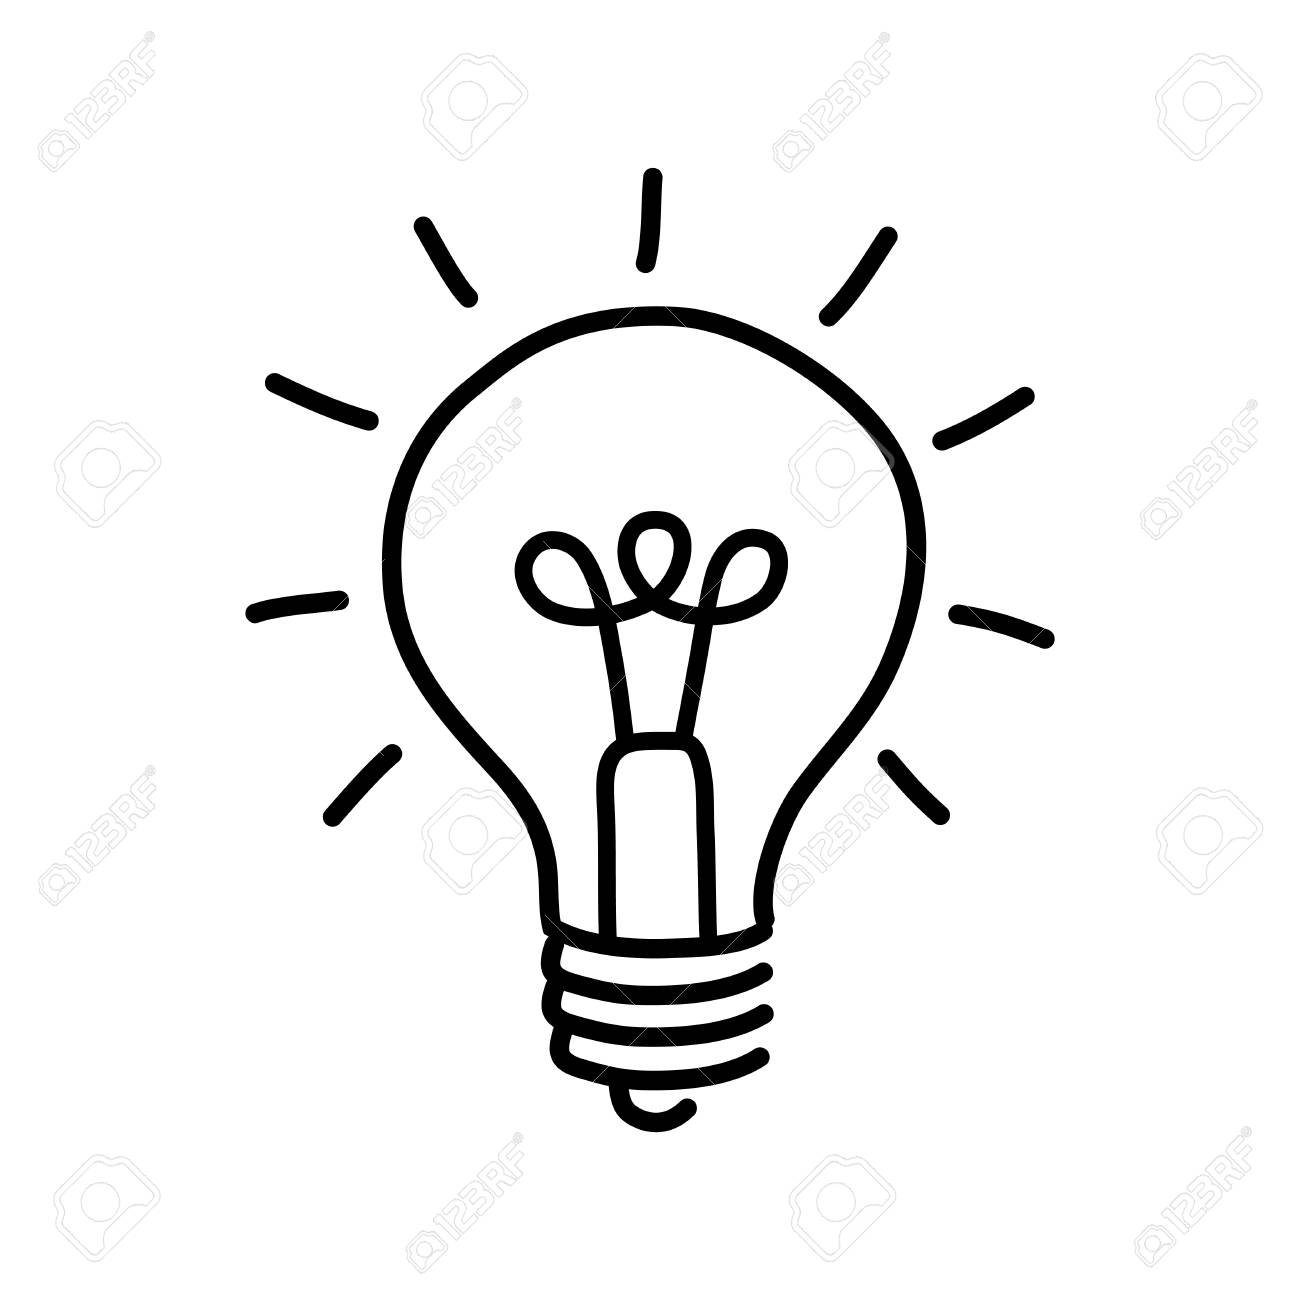 Black Lightbulb Drawing On White Background Stock Vector